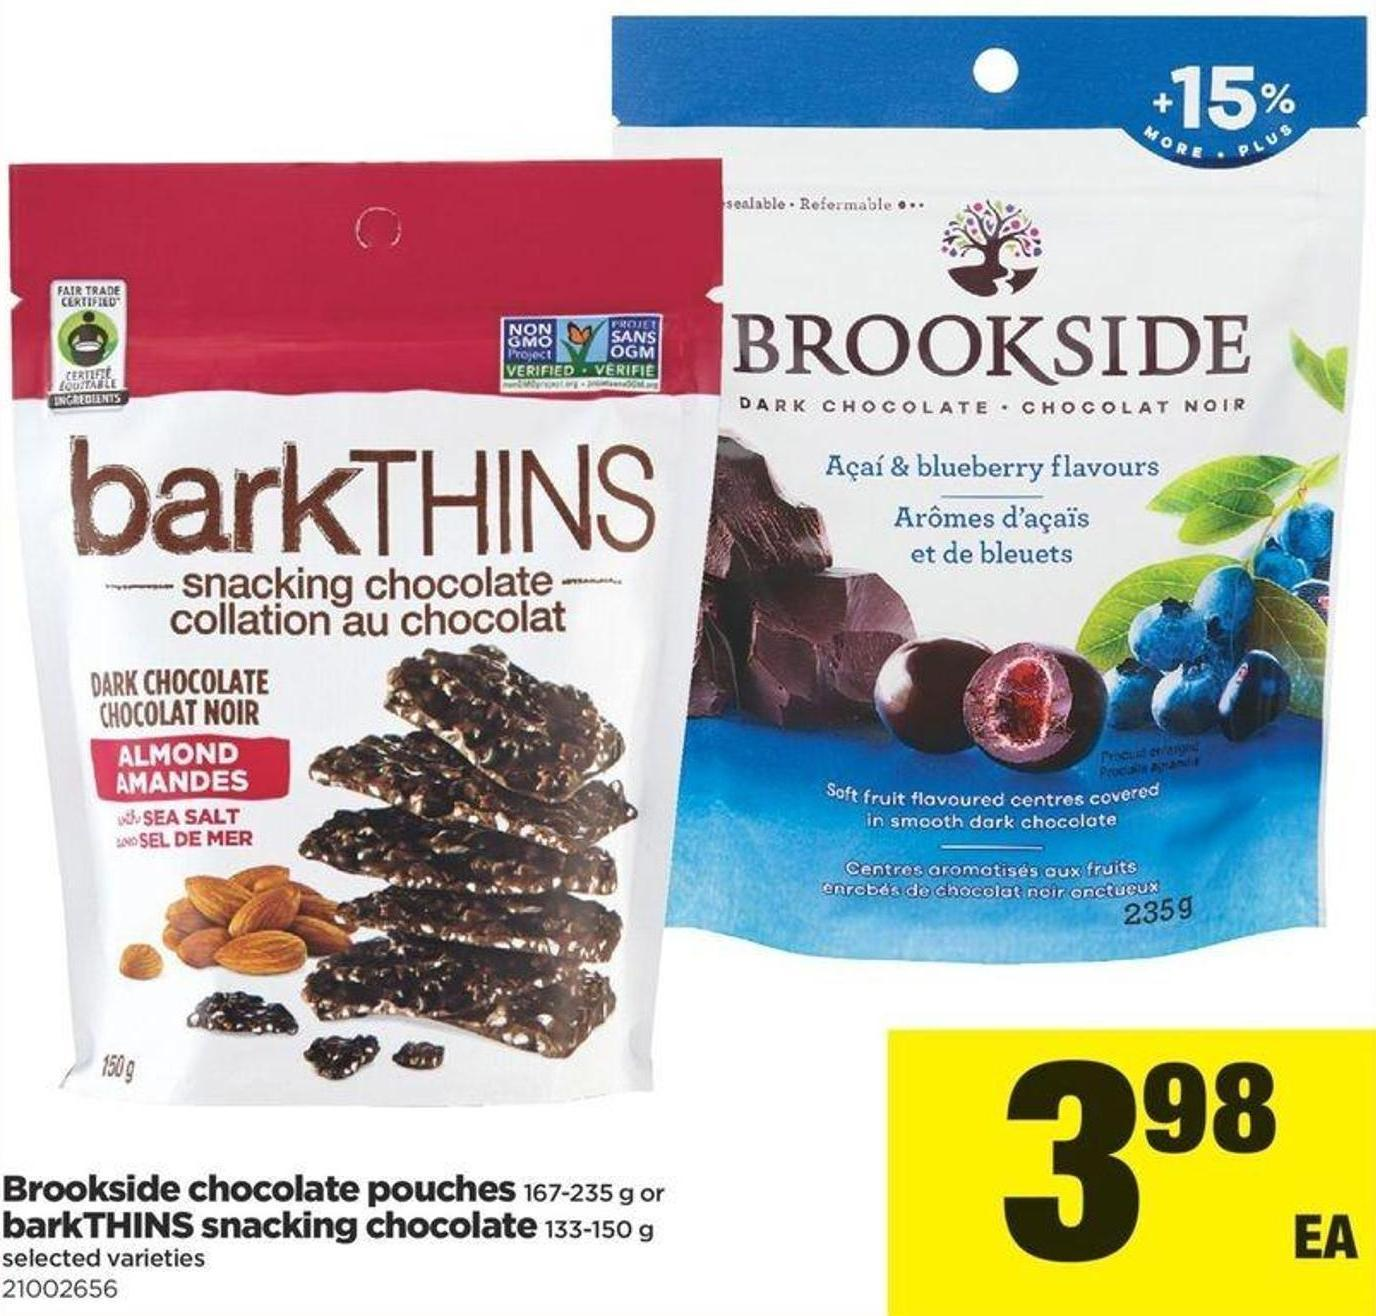 Brookside Chocolate Pouches 167-235 G Or Barkthins Snacking Chocolate 133-150 G